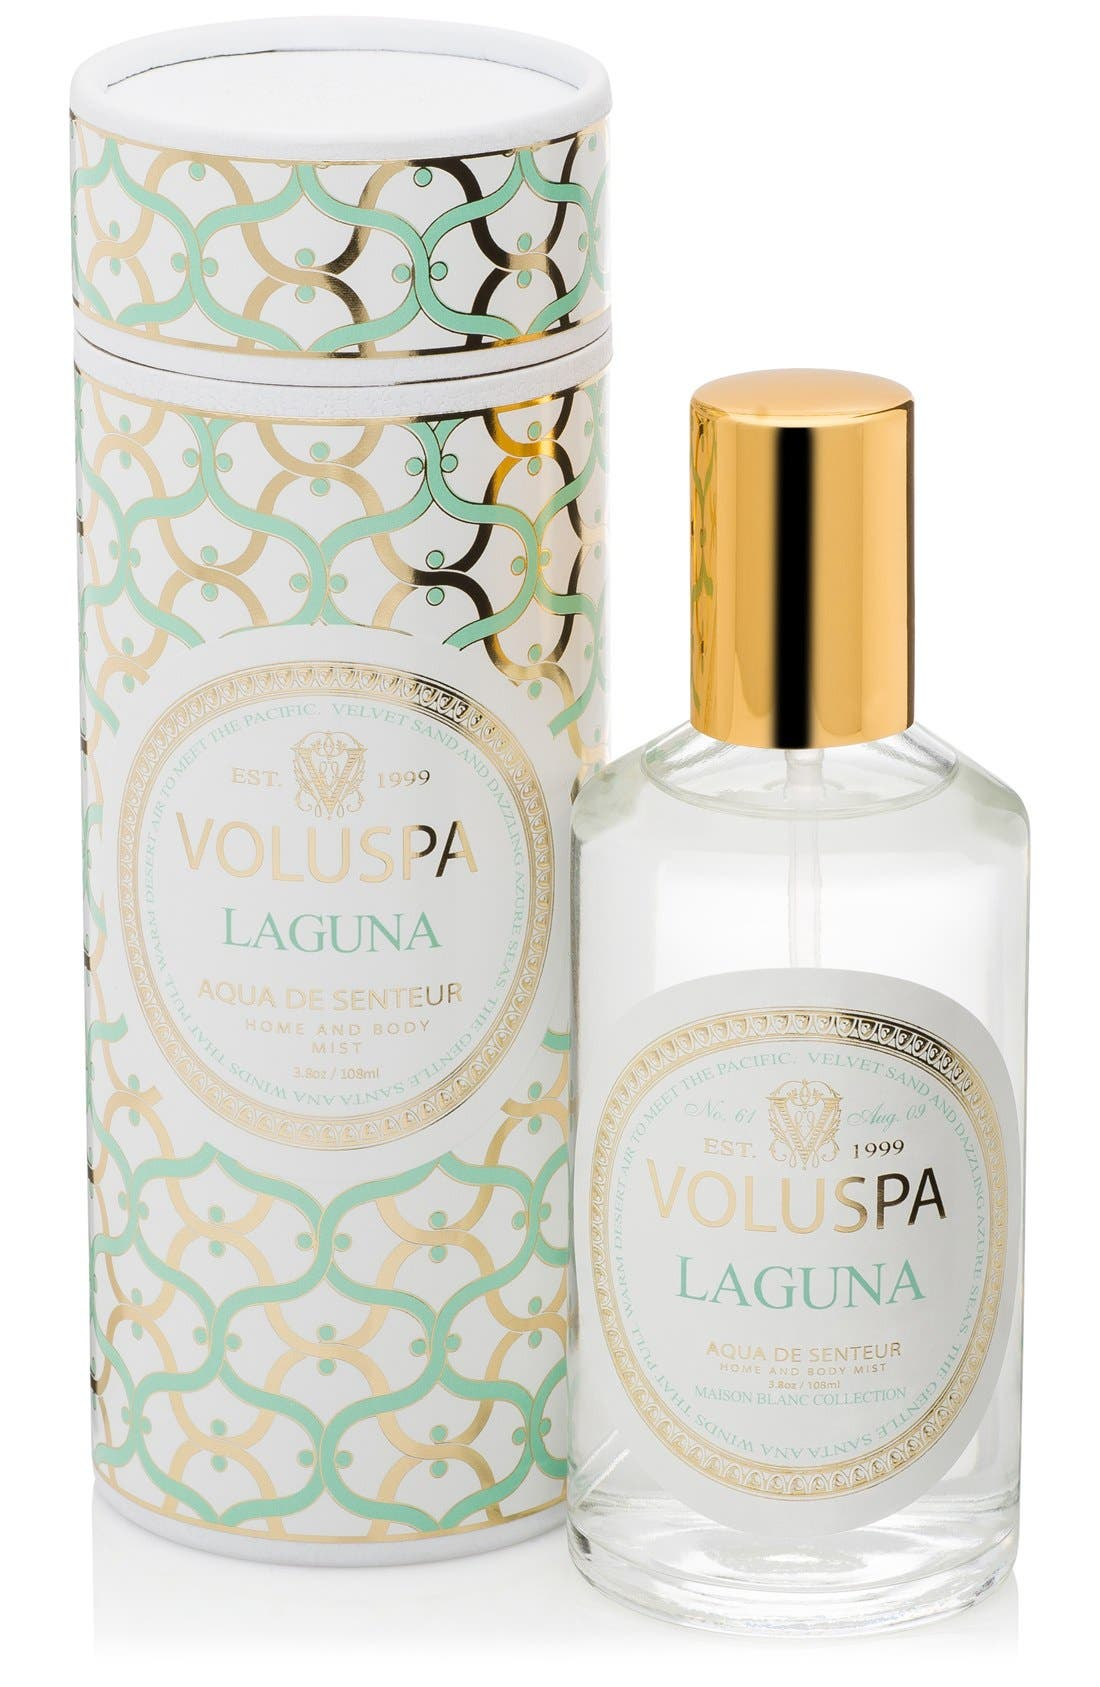 Voluspa 'Maison Blanc - Laguna' Home & Body Mist